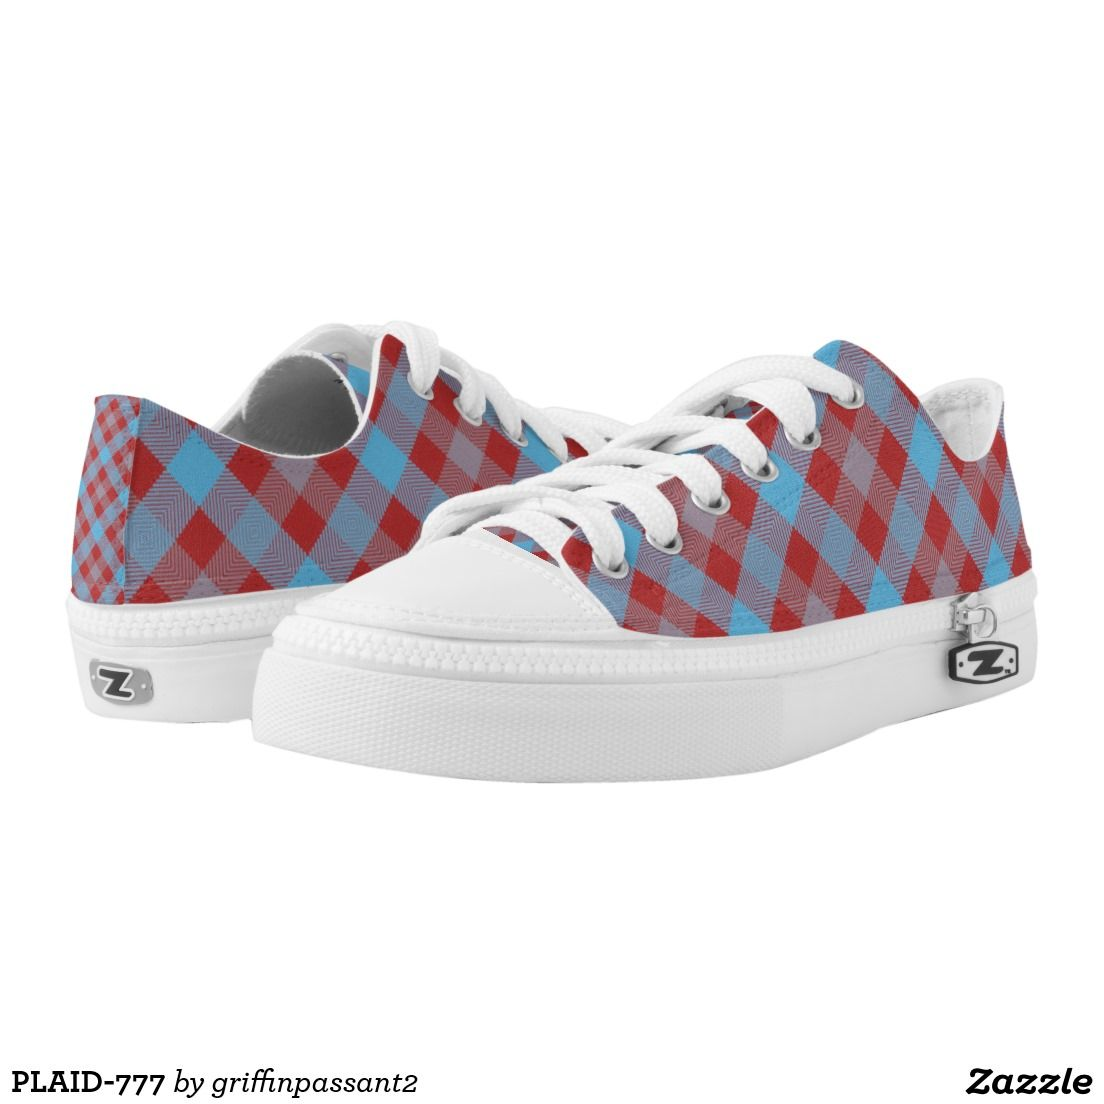 PLAID-777 PRINTED SHOES